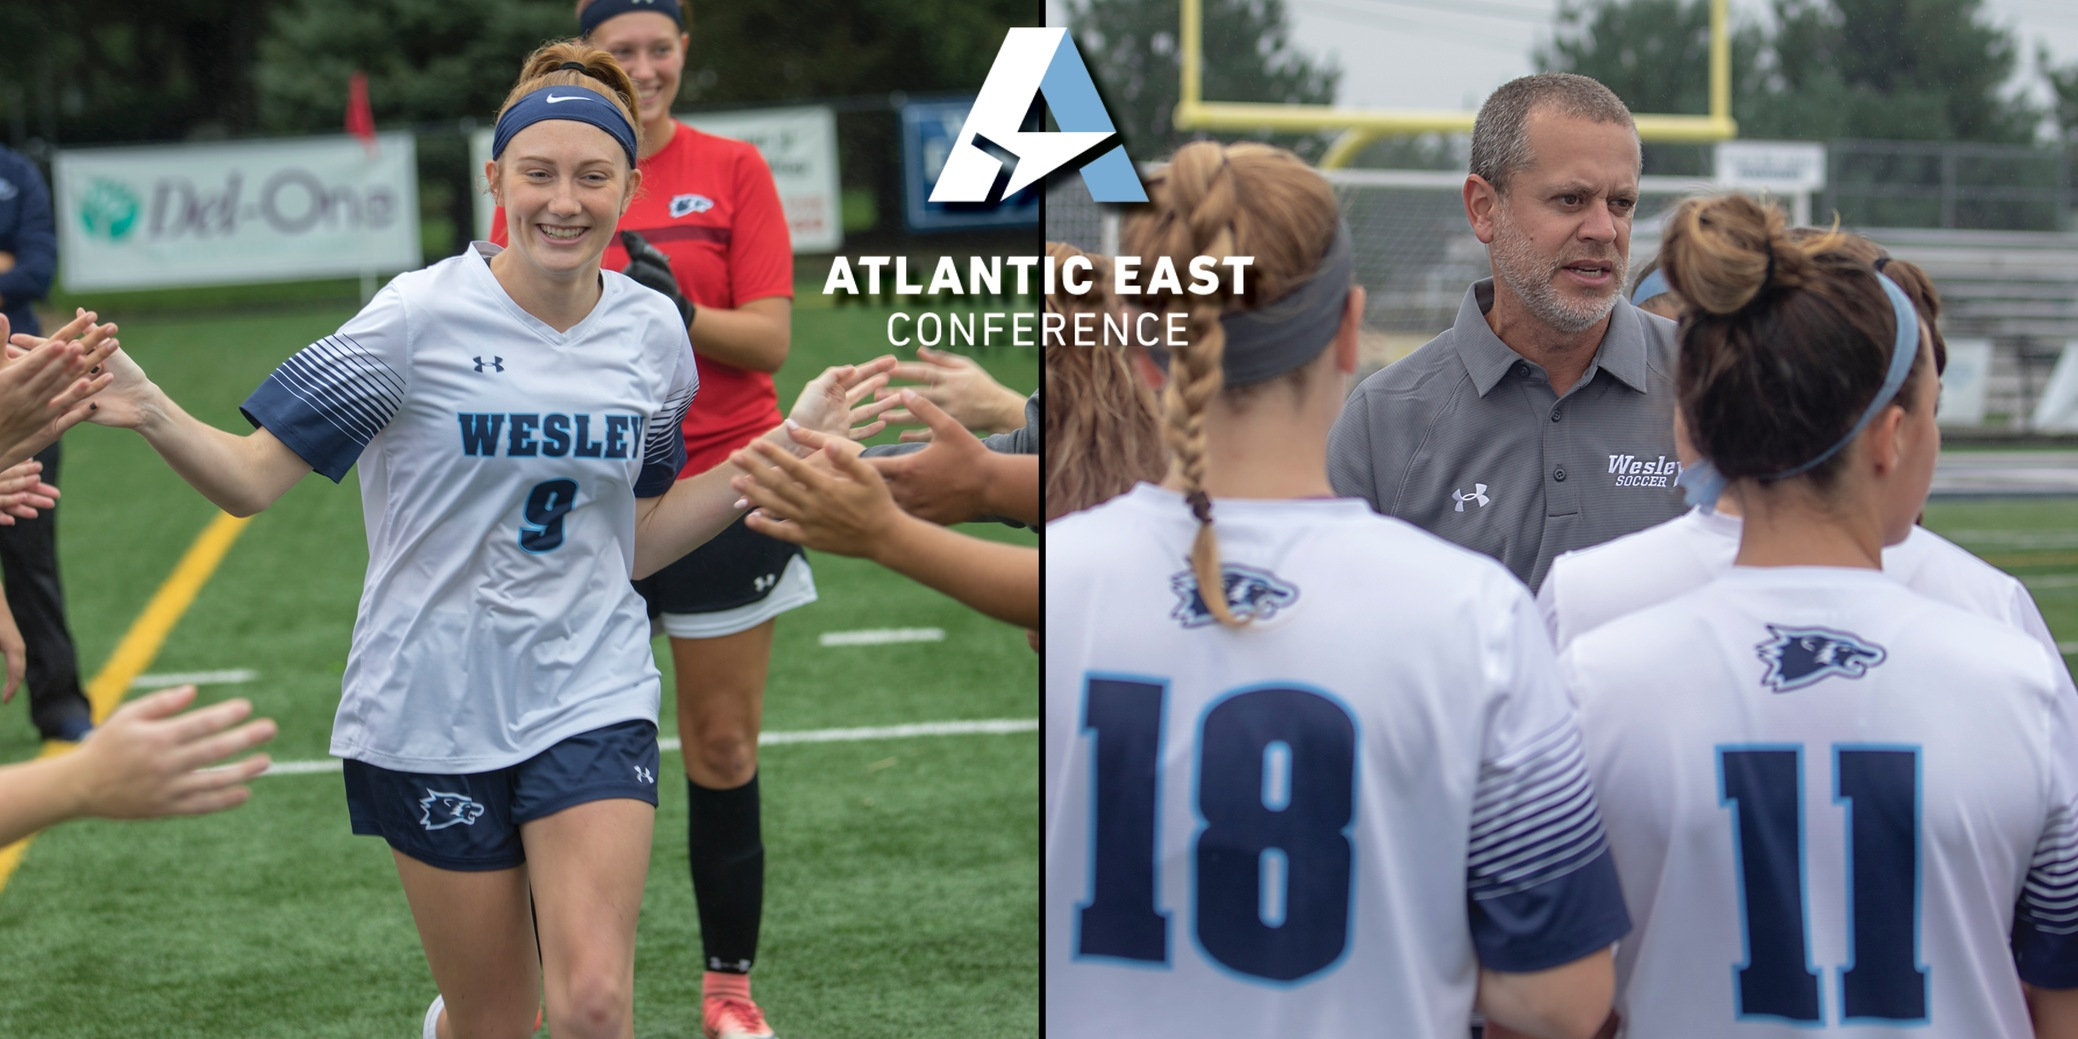 Forsythe, Muntz earn Atlantic East major awards